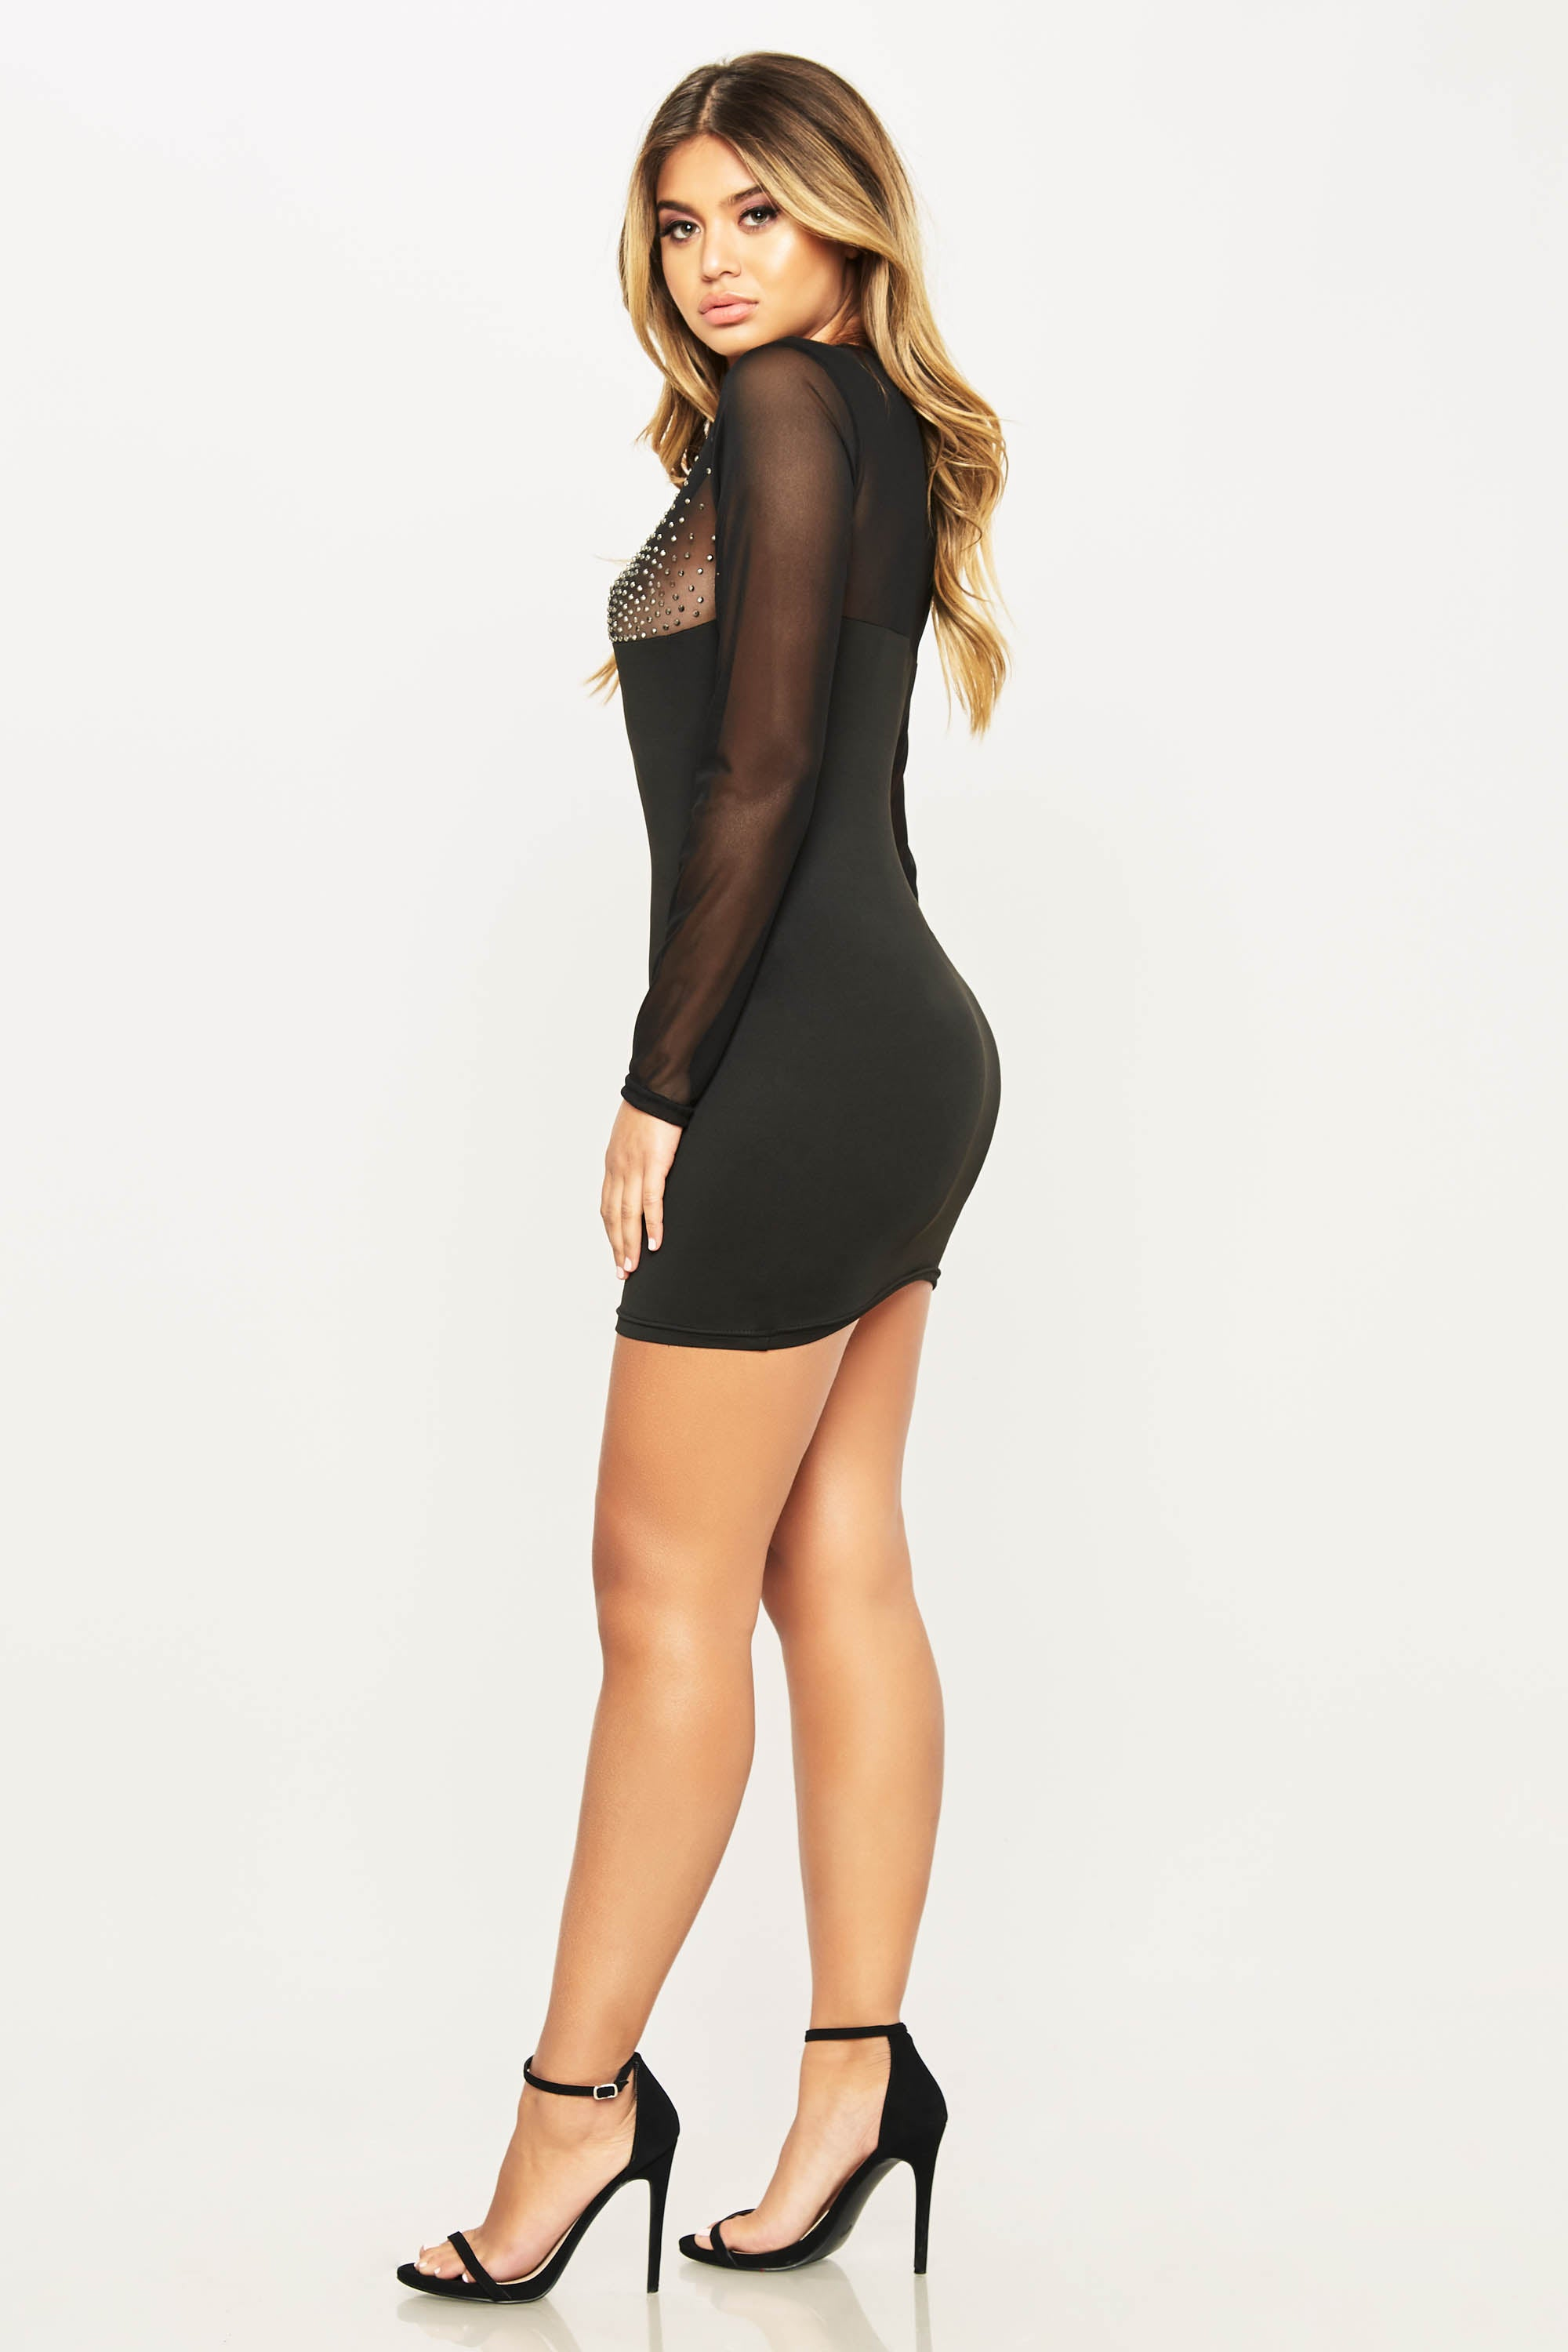 Anything For You Dress - HoneyBum